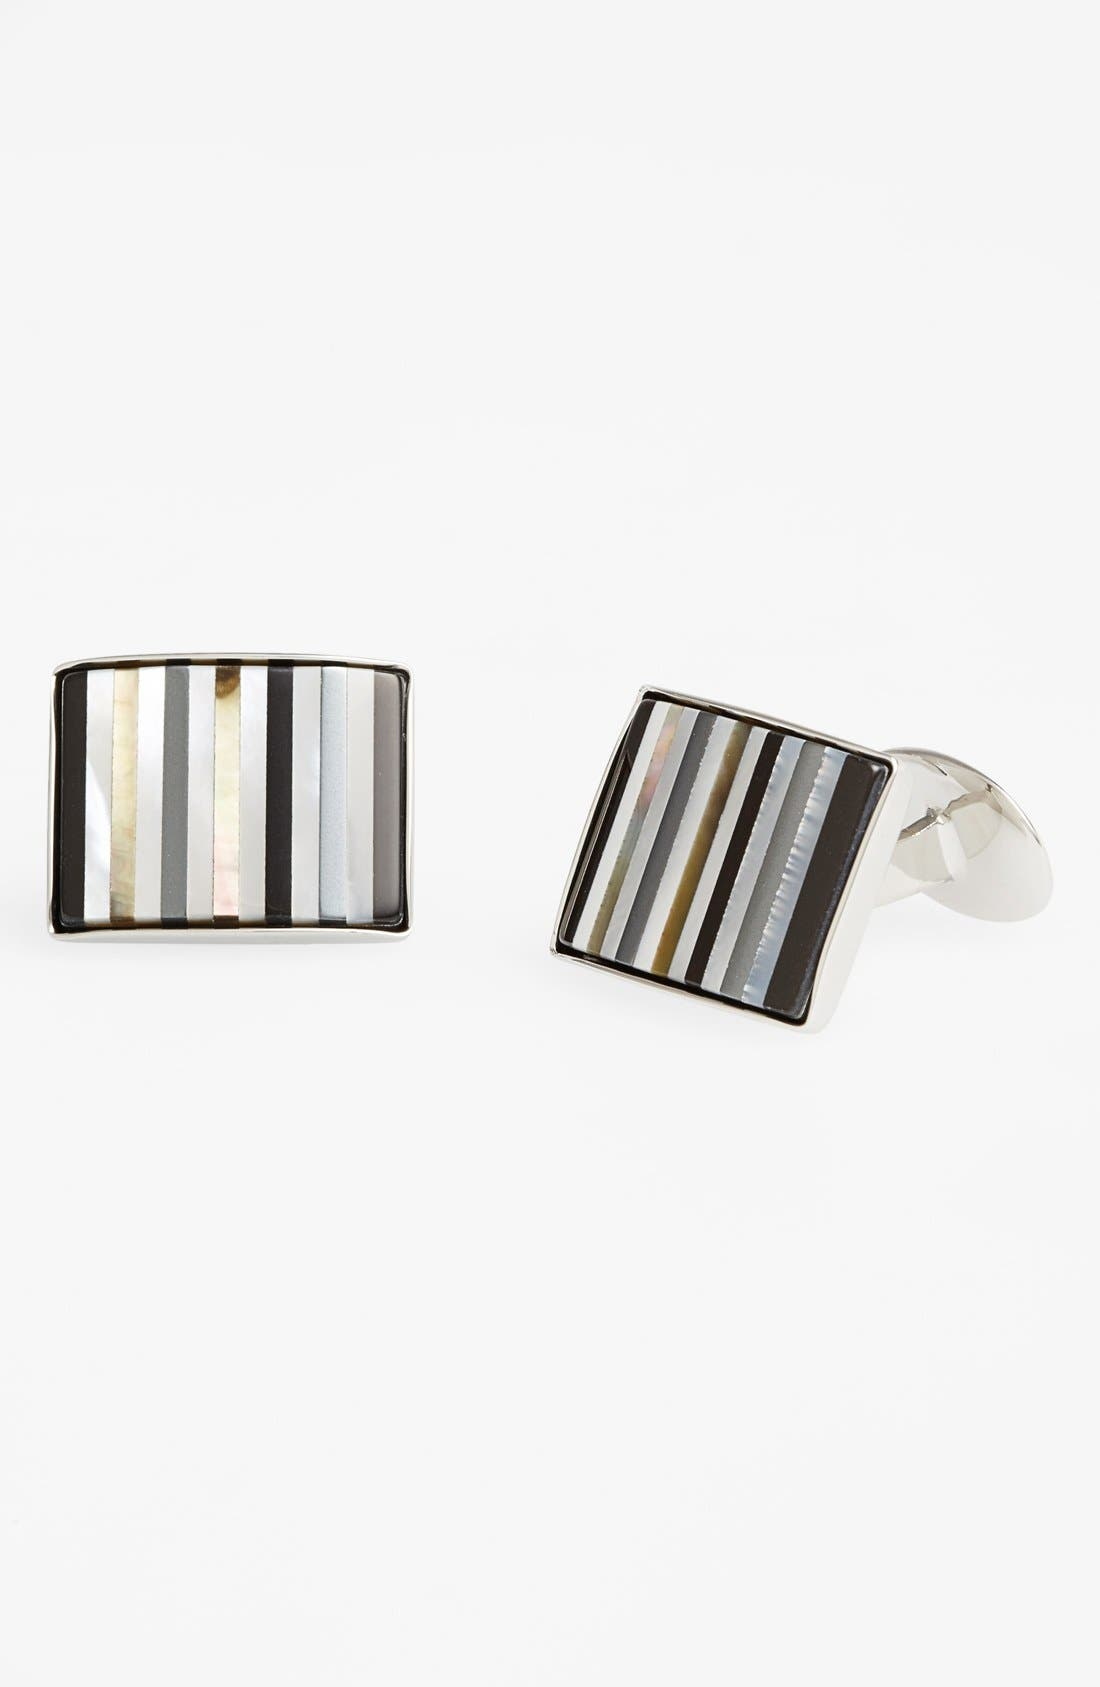 Semiprecious Cuff Links,                             Main thumbnail 1, color,                             STERLING SILVER/ MULTICOLORED